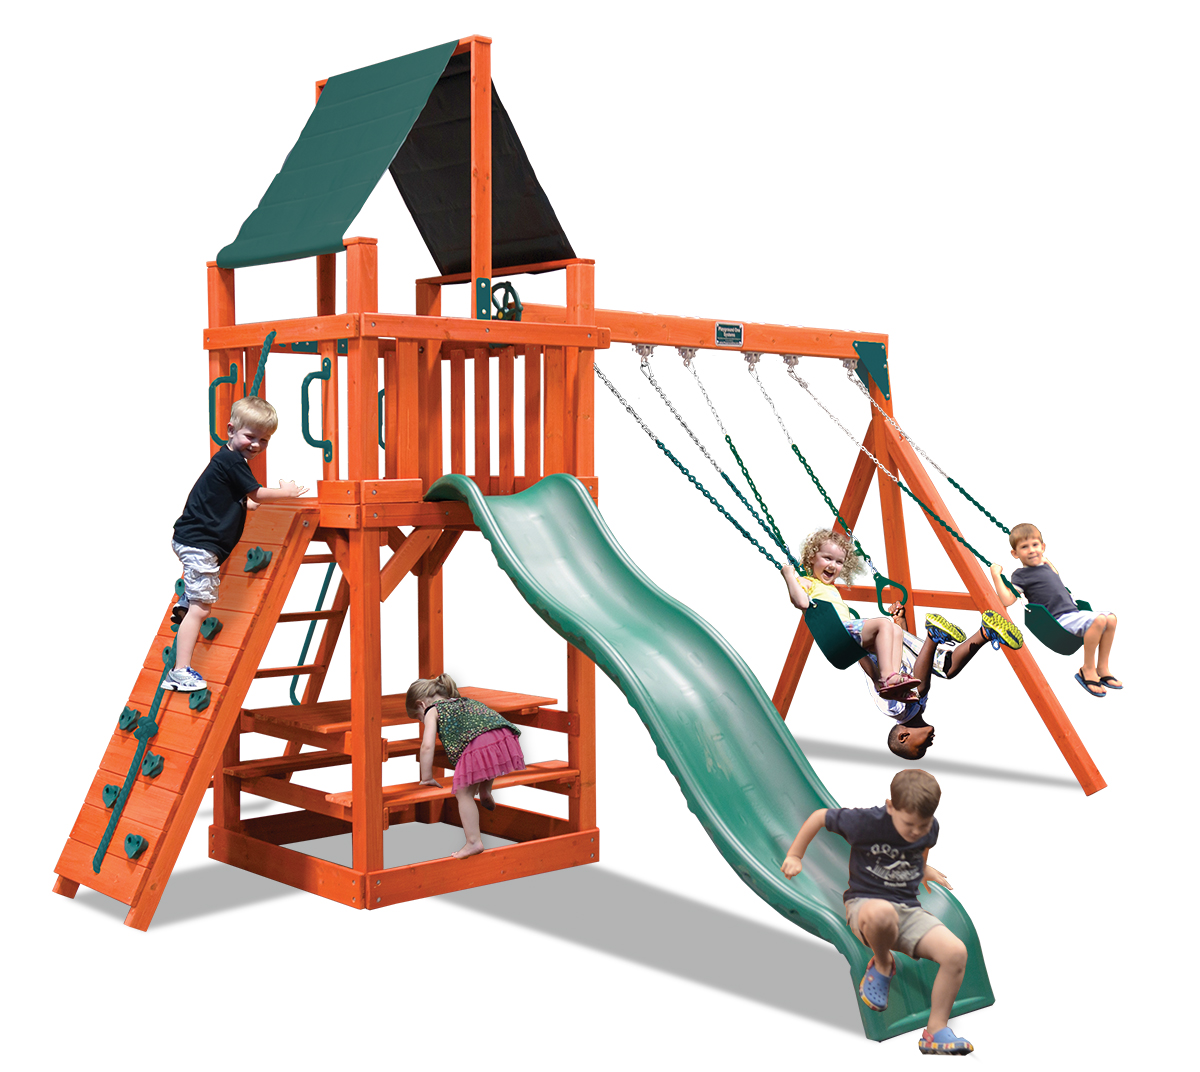 Classic Fort swing set with a play deck, belt swings and a trapeze bar